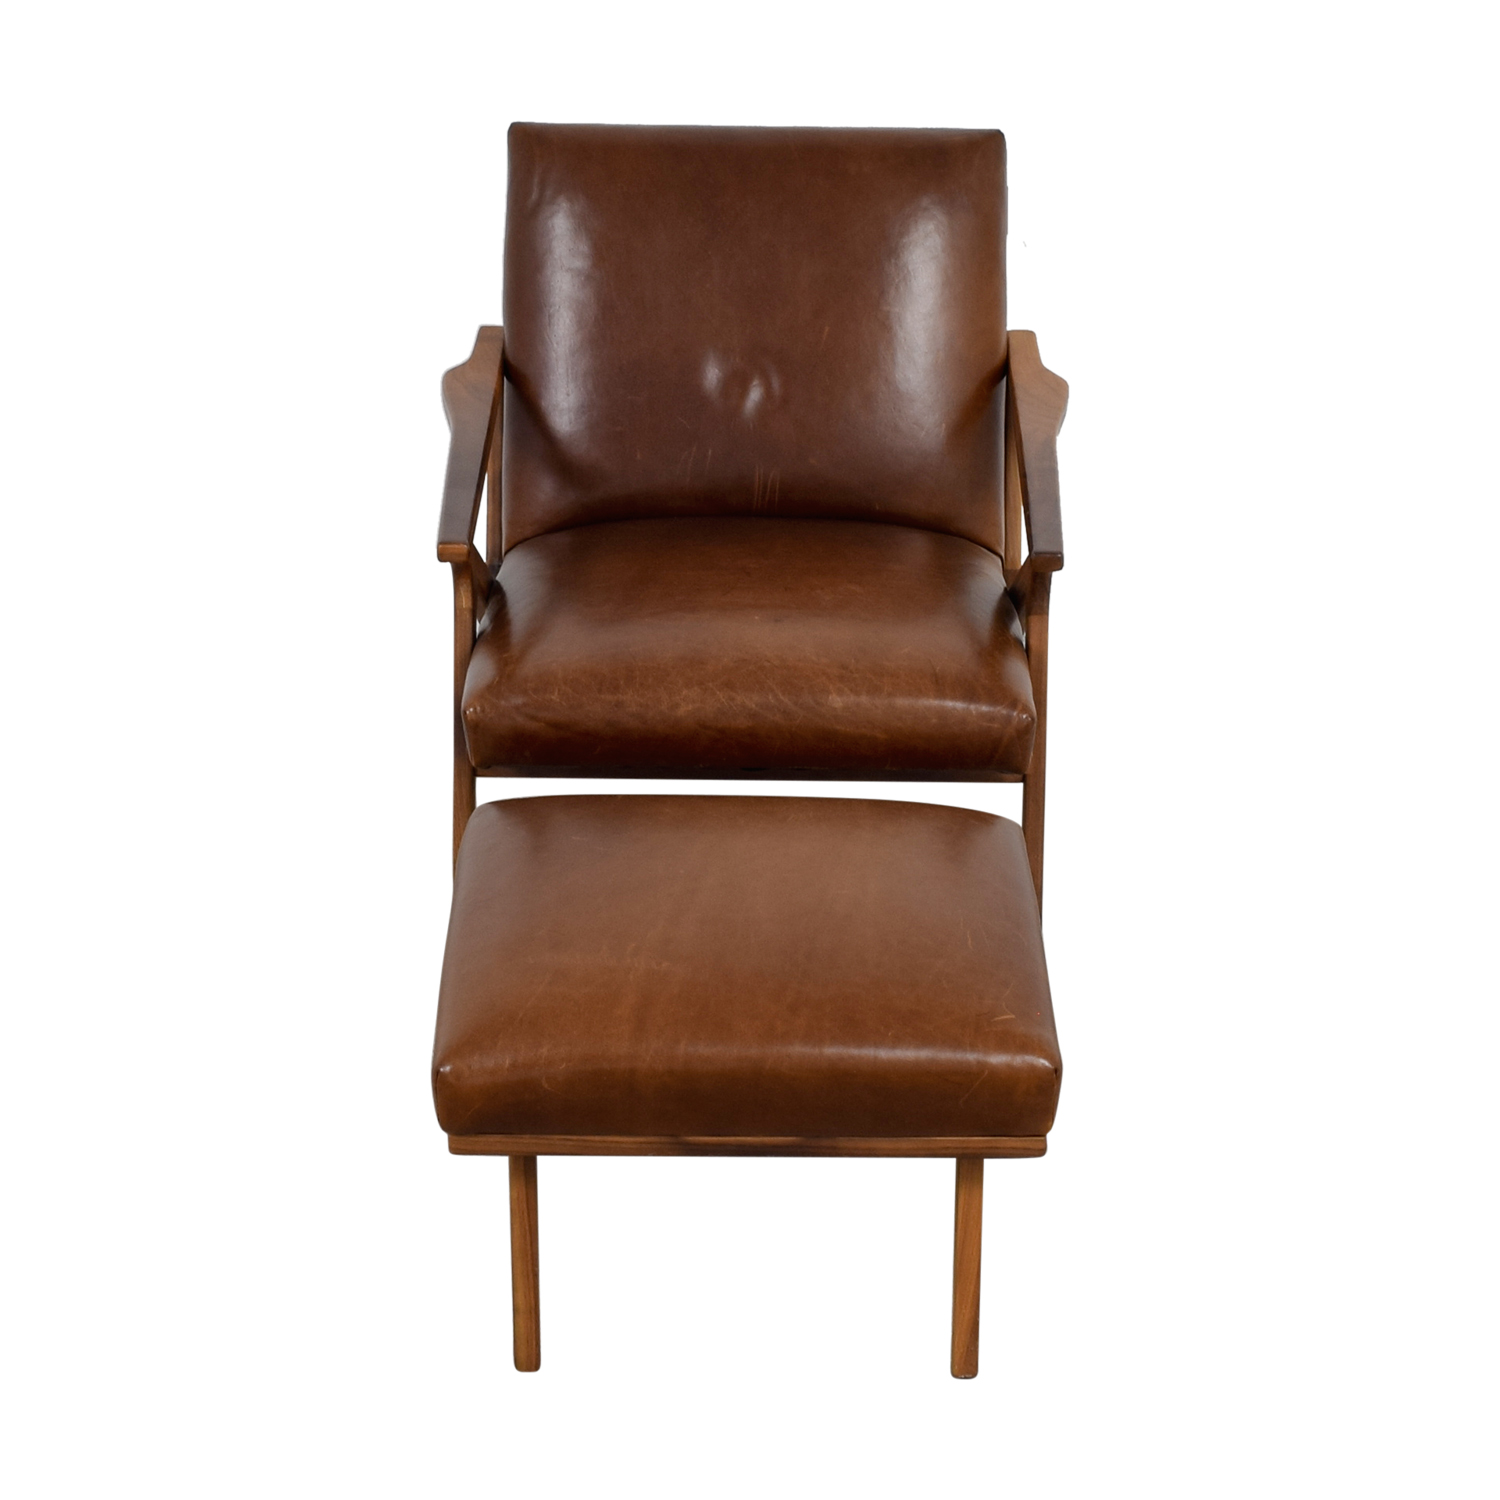 buy Crate & Barrel Brown Leather Chair and Ottoman Crate & Barrel Chairs